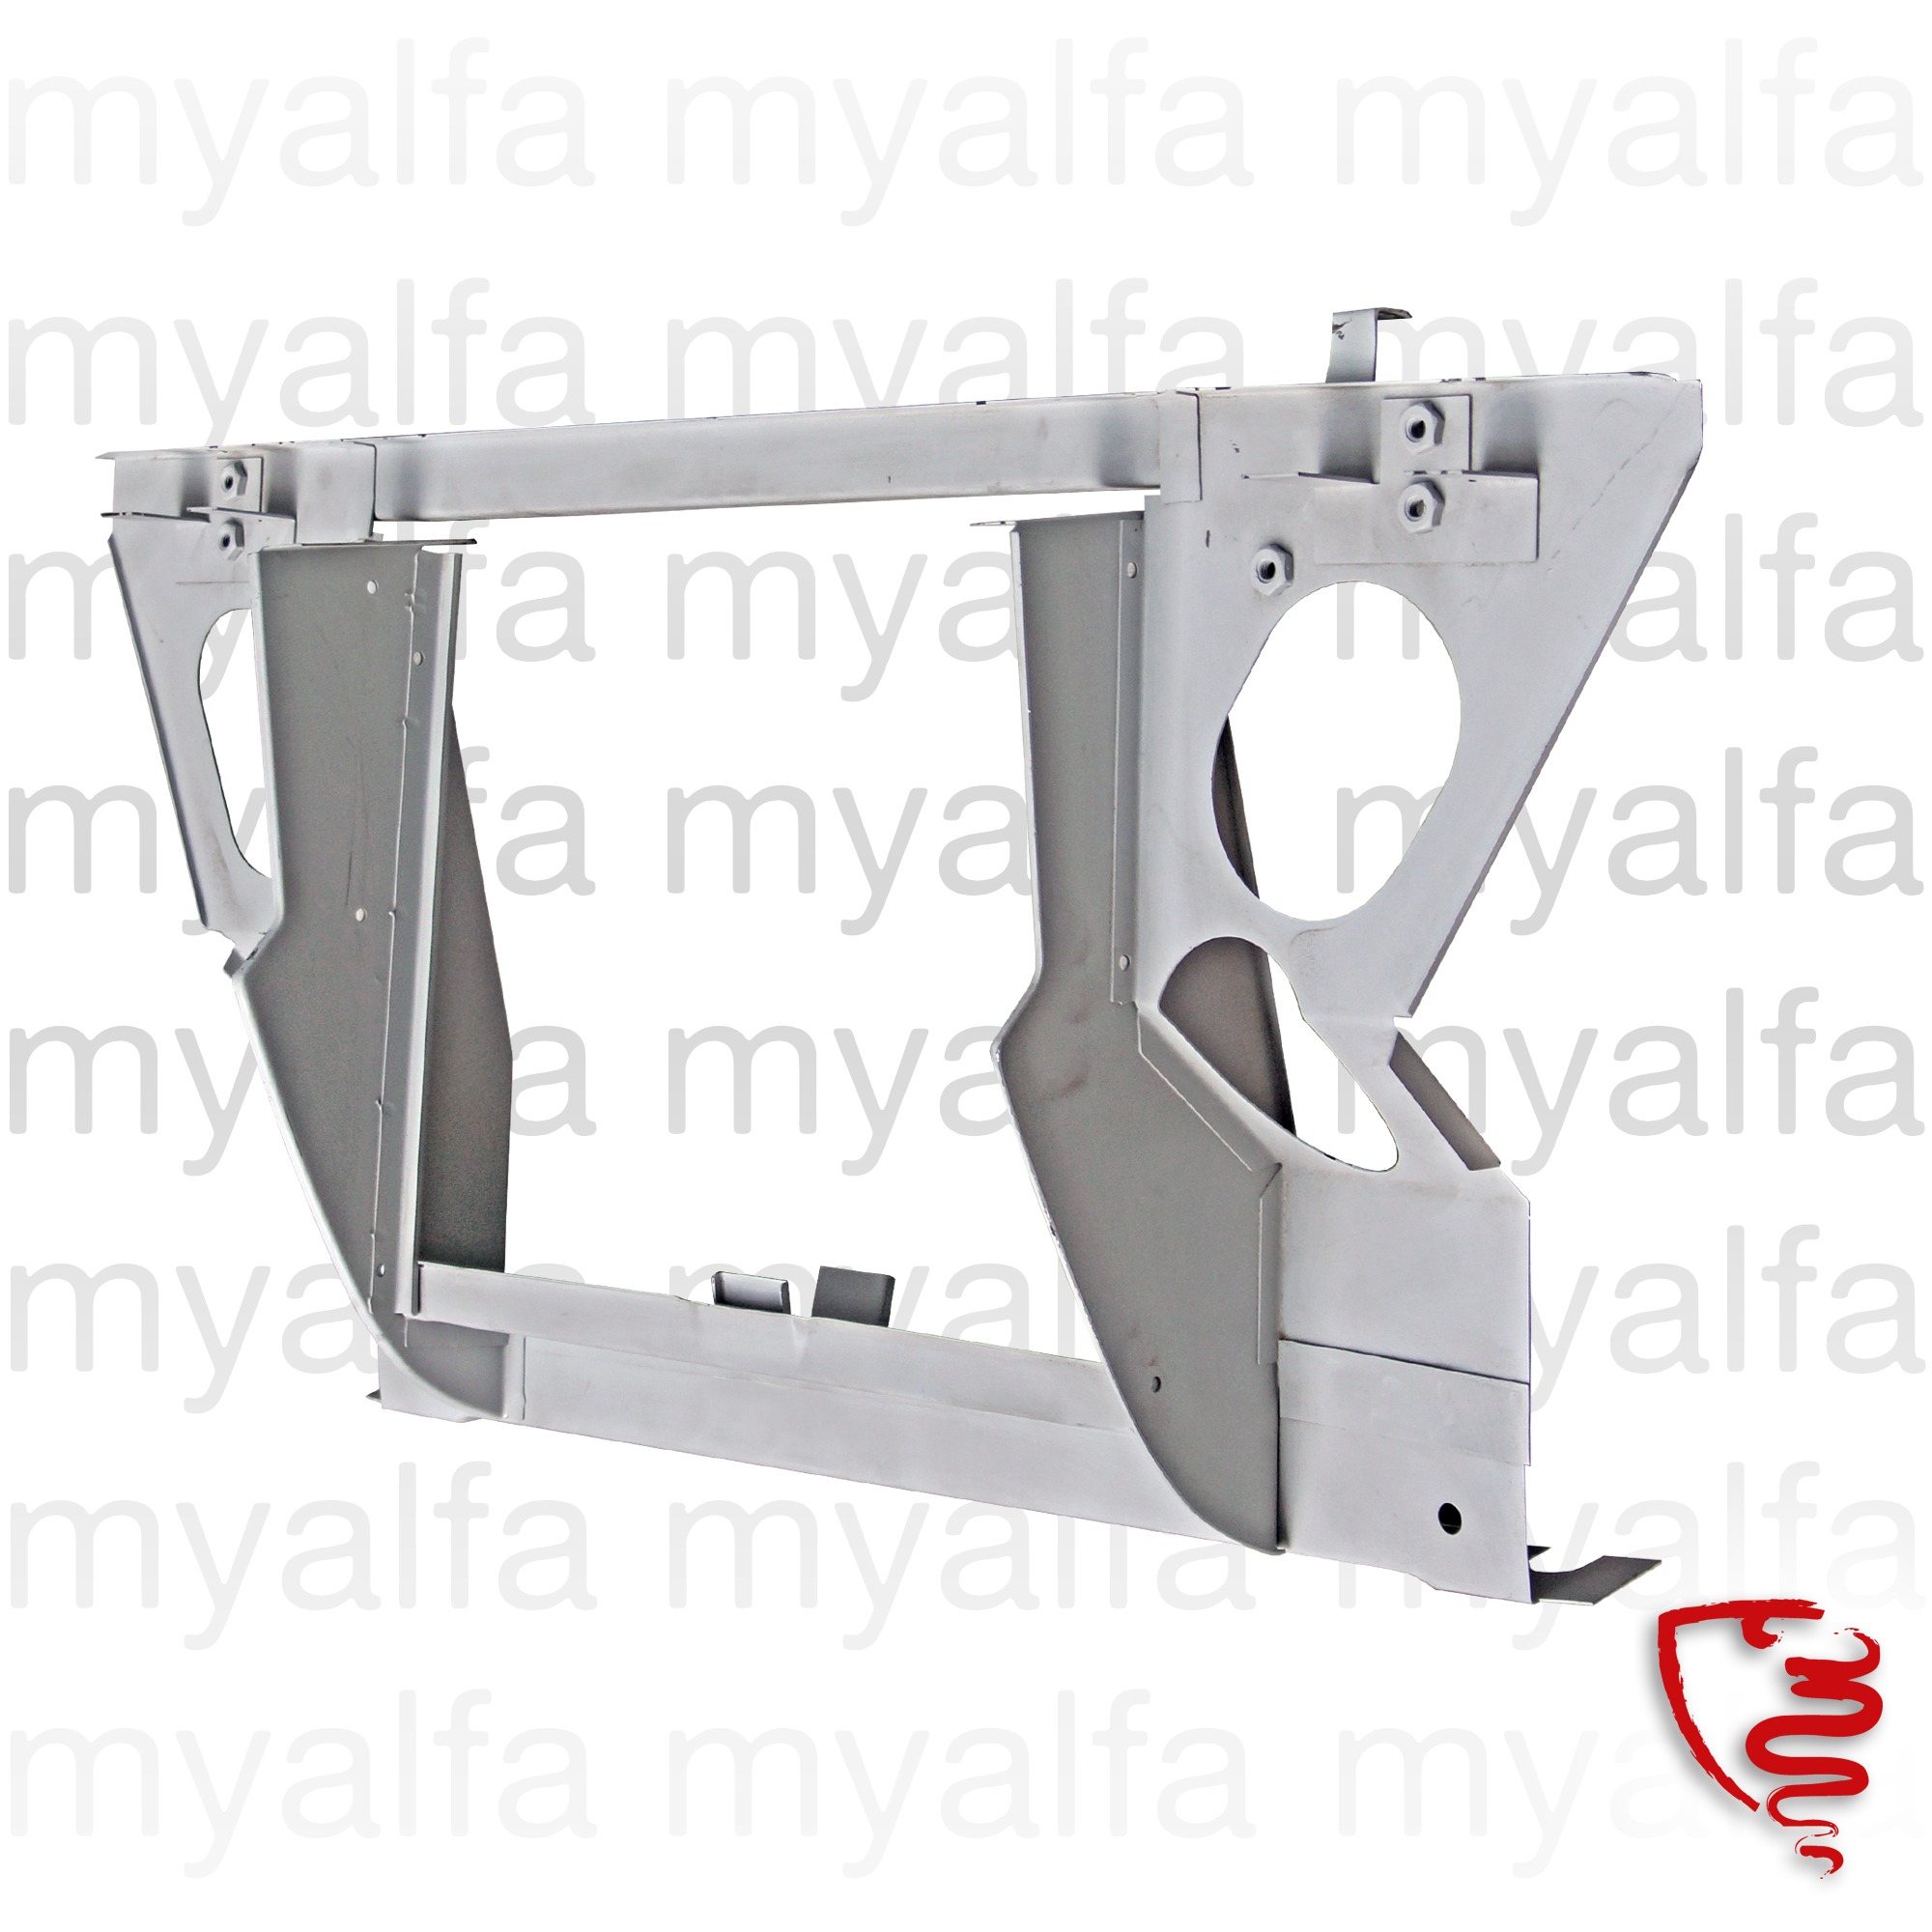 radiator frame GT Bertone - 2nd Grade for 105/115, Coupe, 2000, Body parts, Panels, Engine compartment